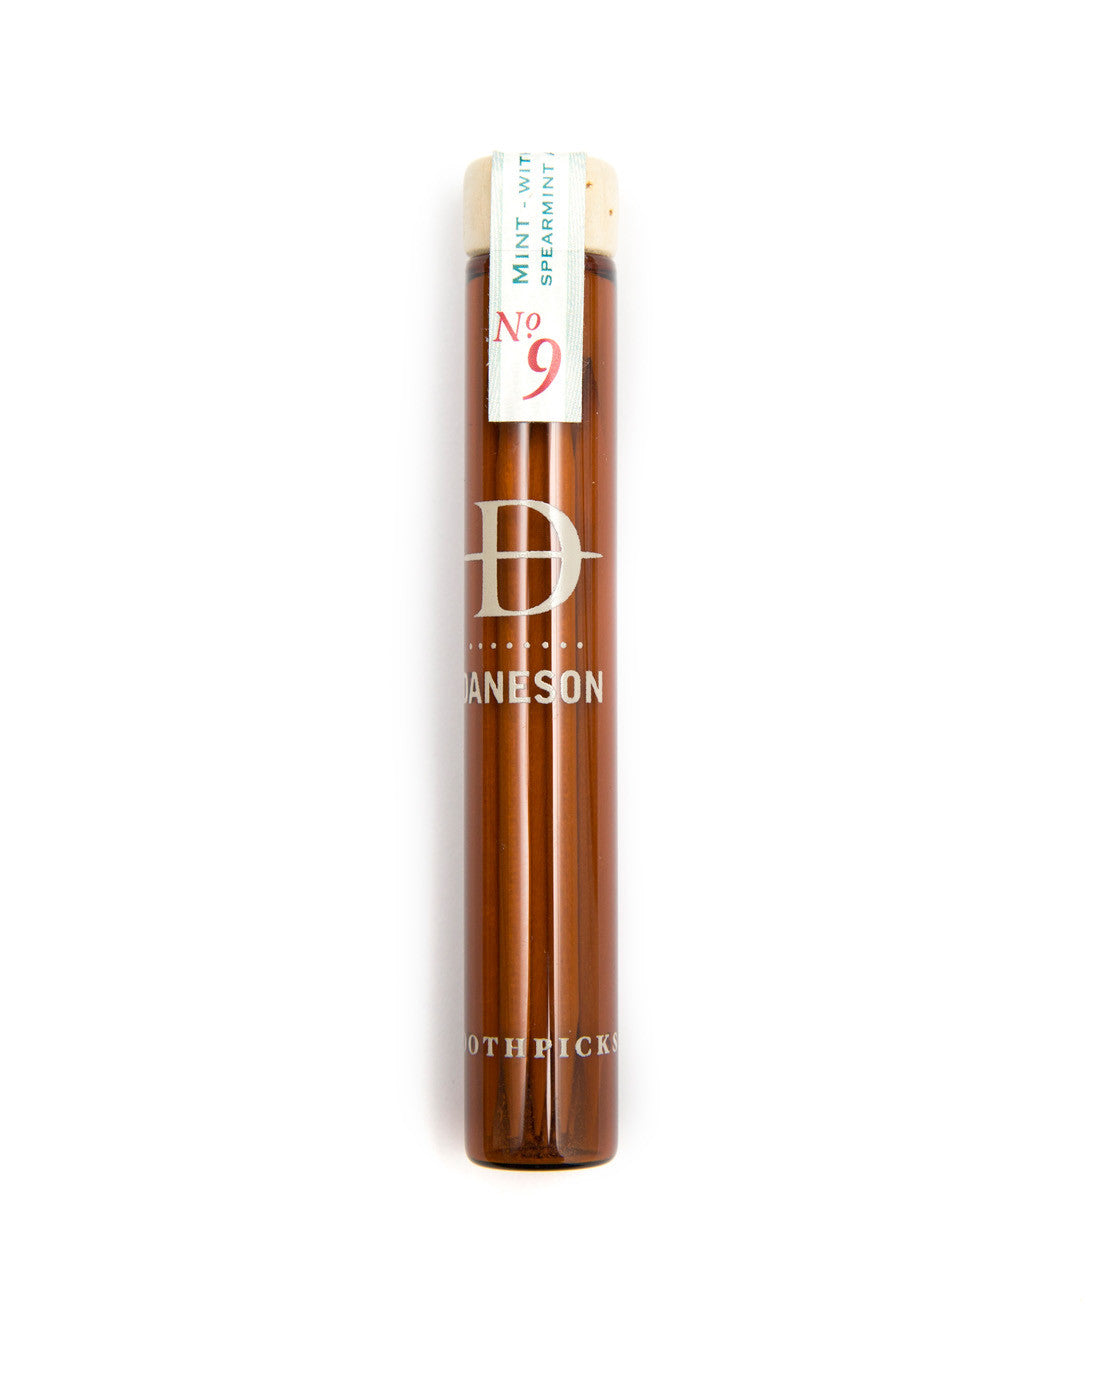 ONE DANESON FLAVORED TOOTHPICKS <br>(to combat that stubborn vaper's tongue)